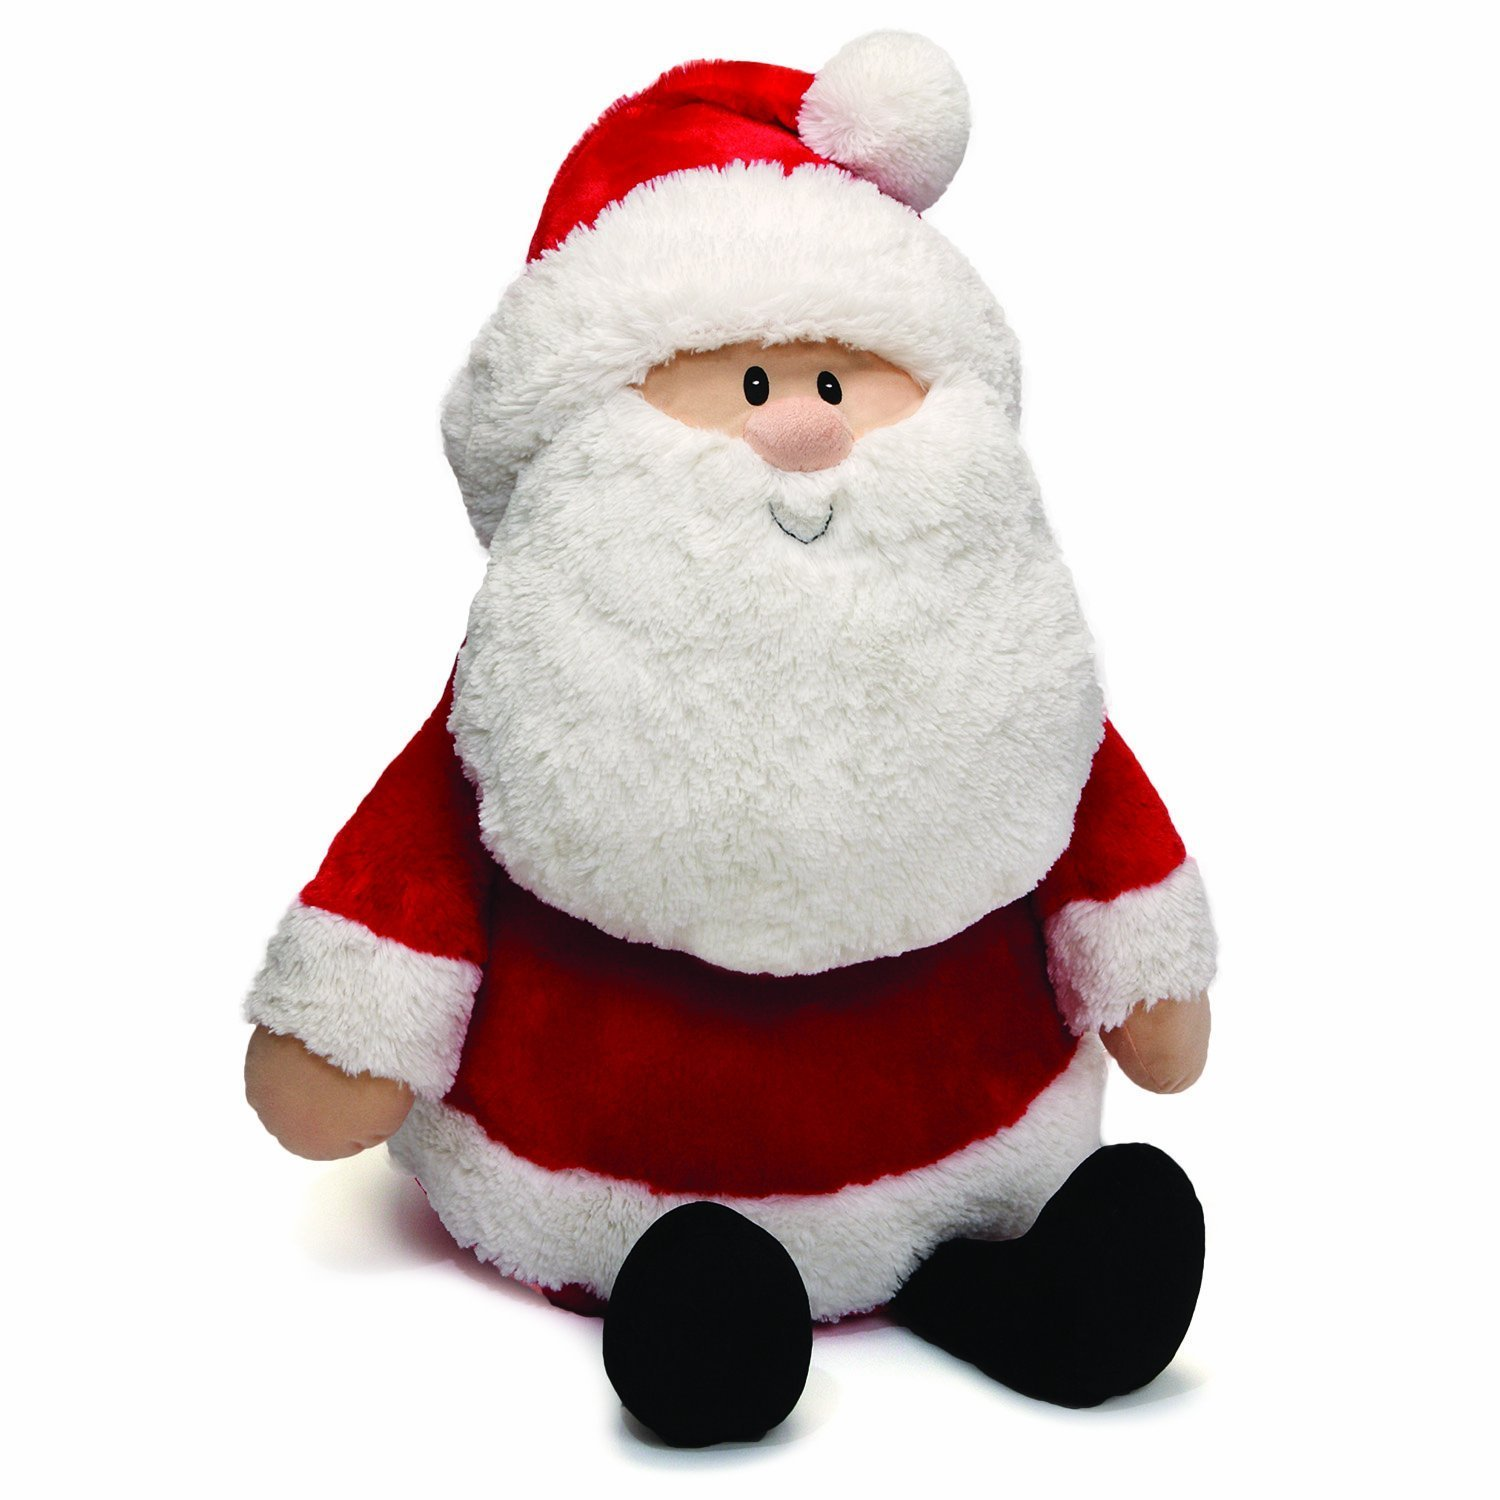 Toys From Santa : Gund santa claus jumbo christmas plush quot and similar